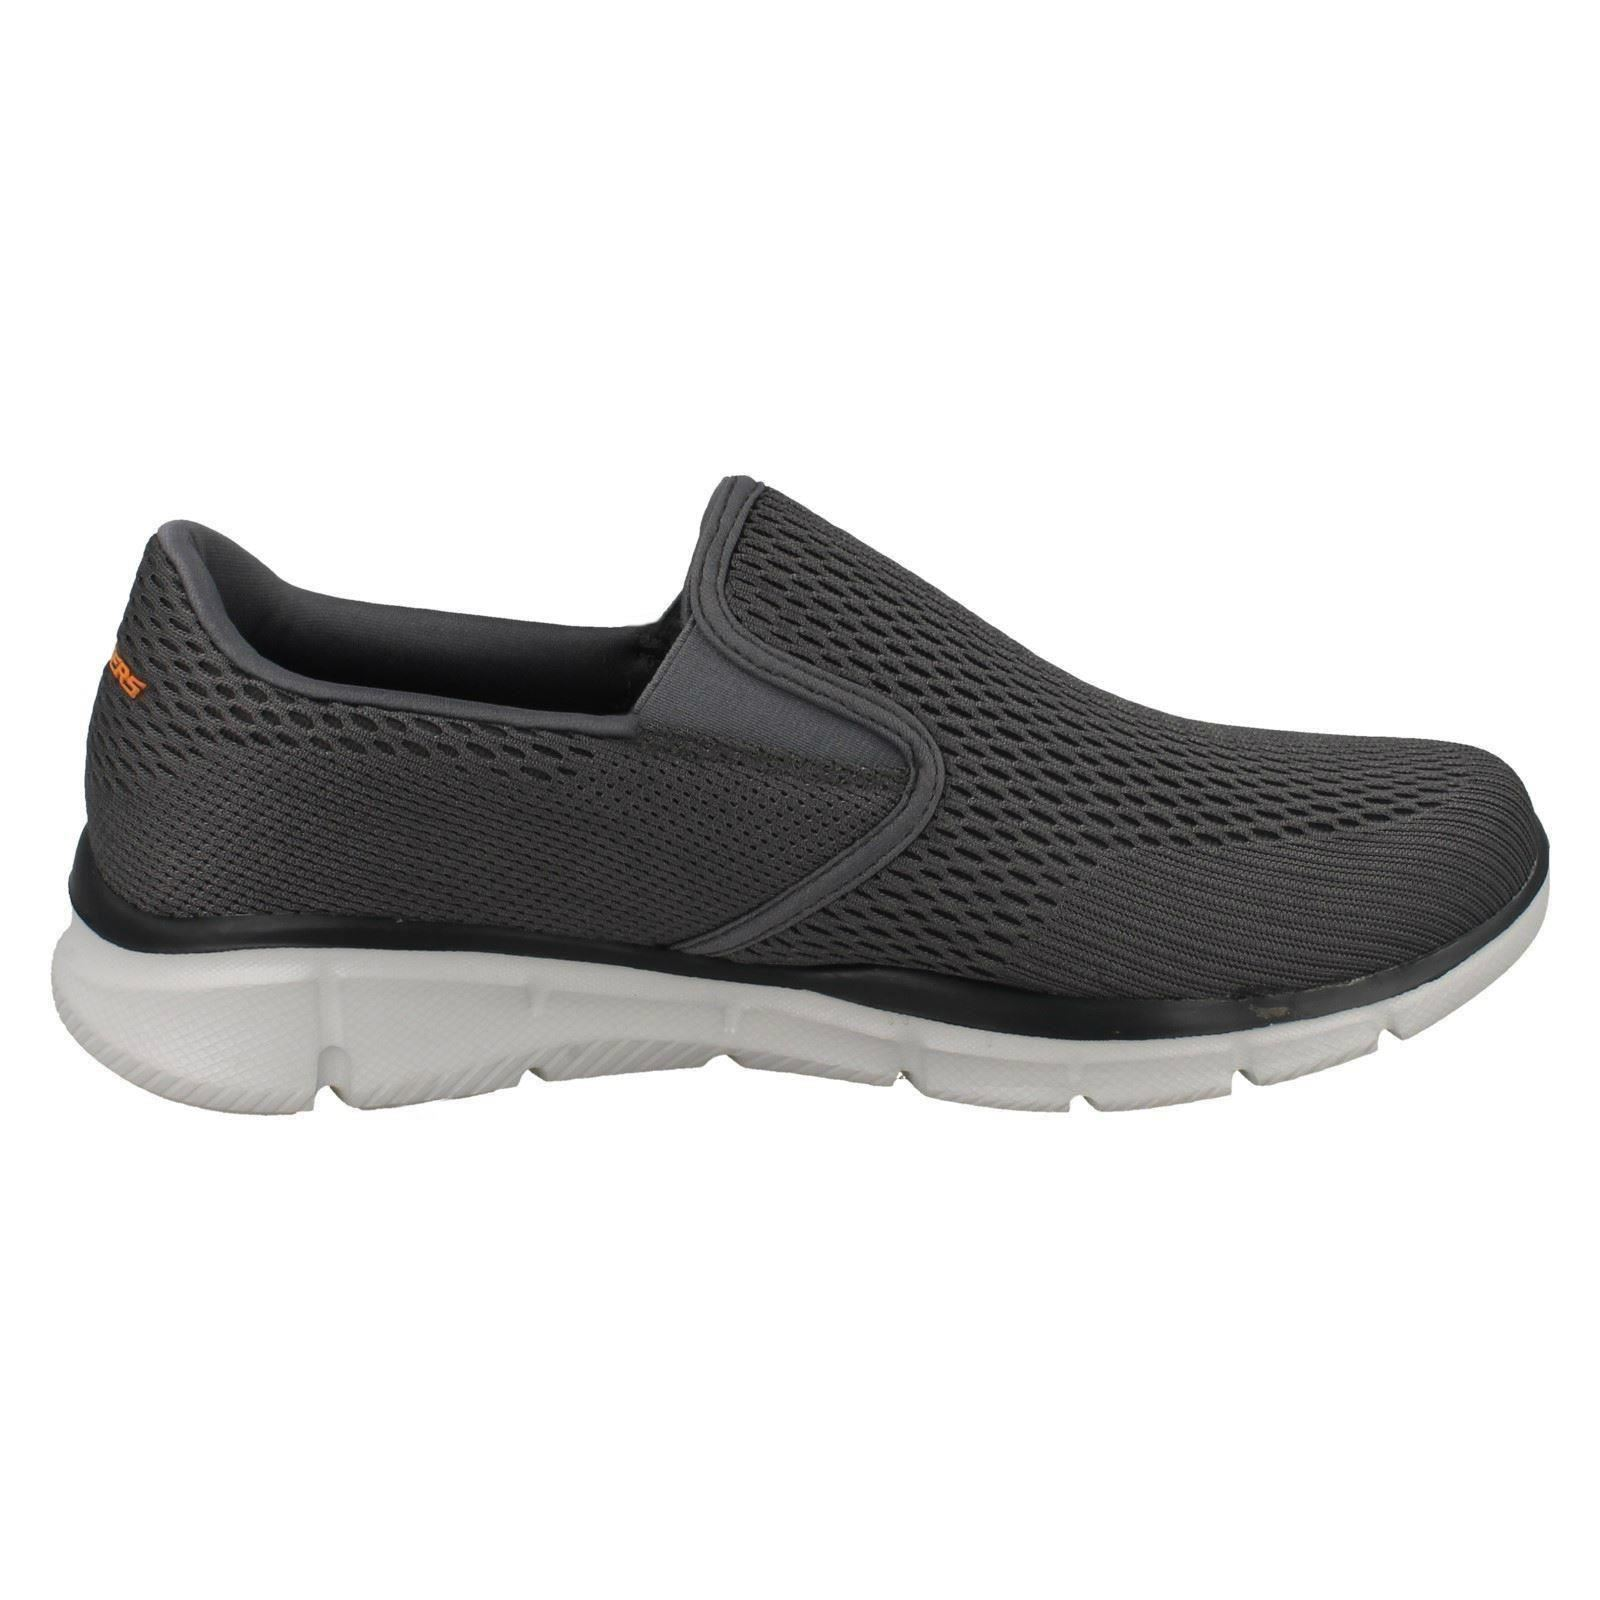 Uomo Skechers Memory Play Foam Schuhes Label Equalizer Double Play Memory 51509 3cdd40